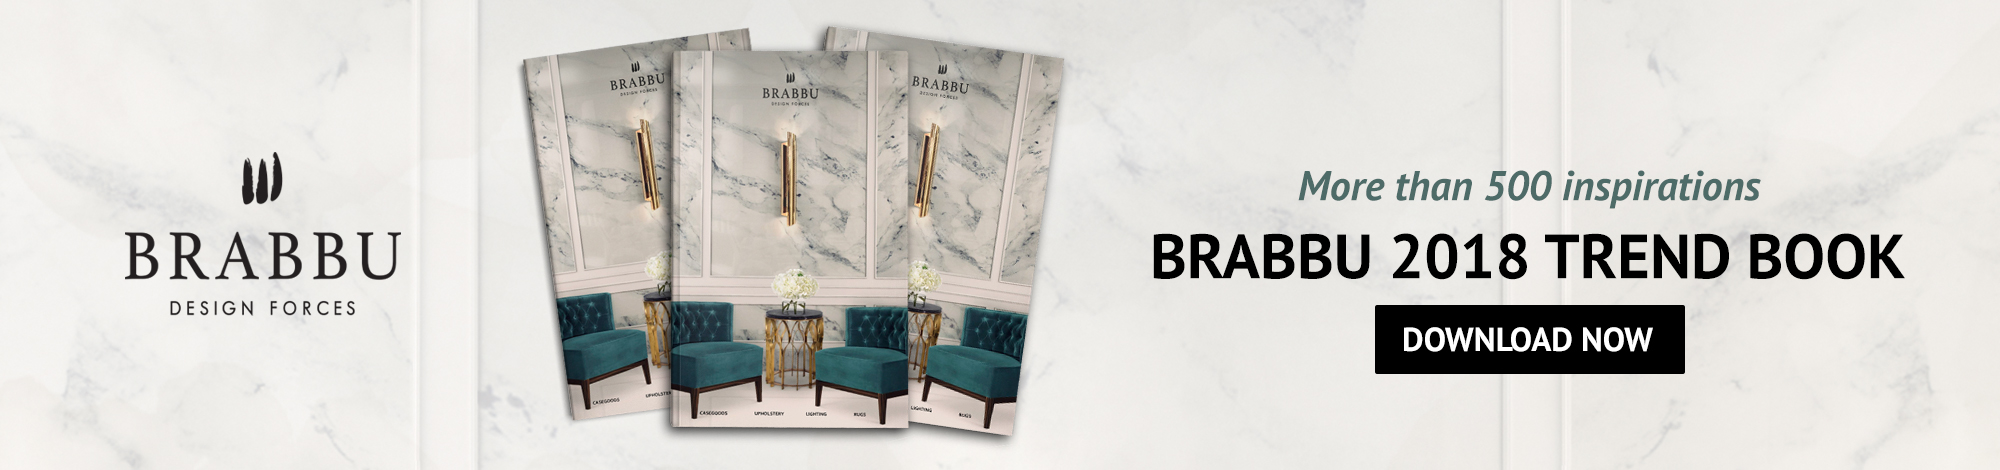 BRABBU Catalogue italian art and design Italian Art And Design Icons That You Must Know!  1C5EB82328DCFD5BD10428DB124BD945082C079483CACCDD2D pimgpsh fullsize distr